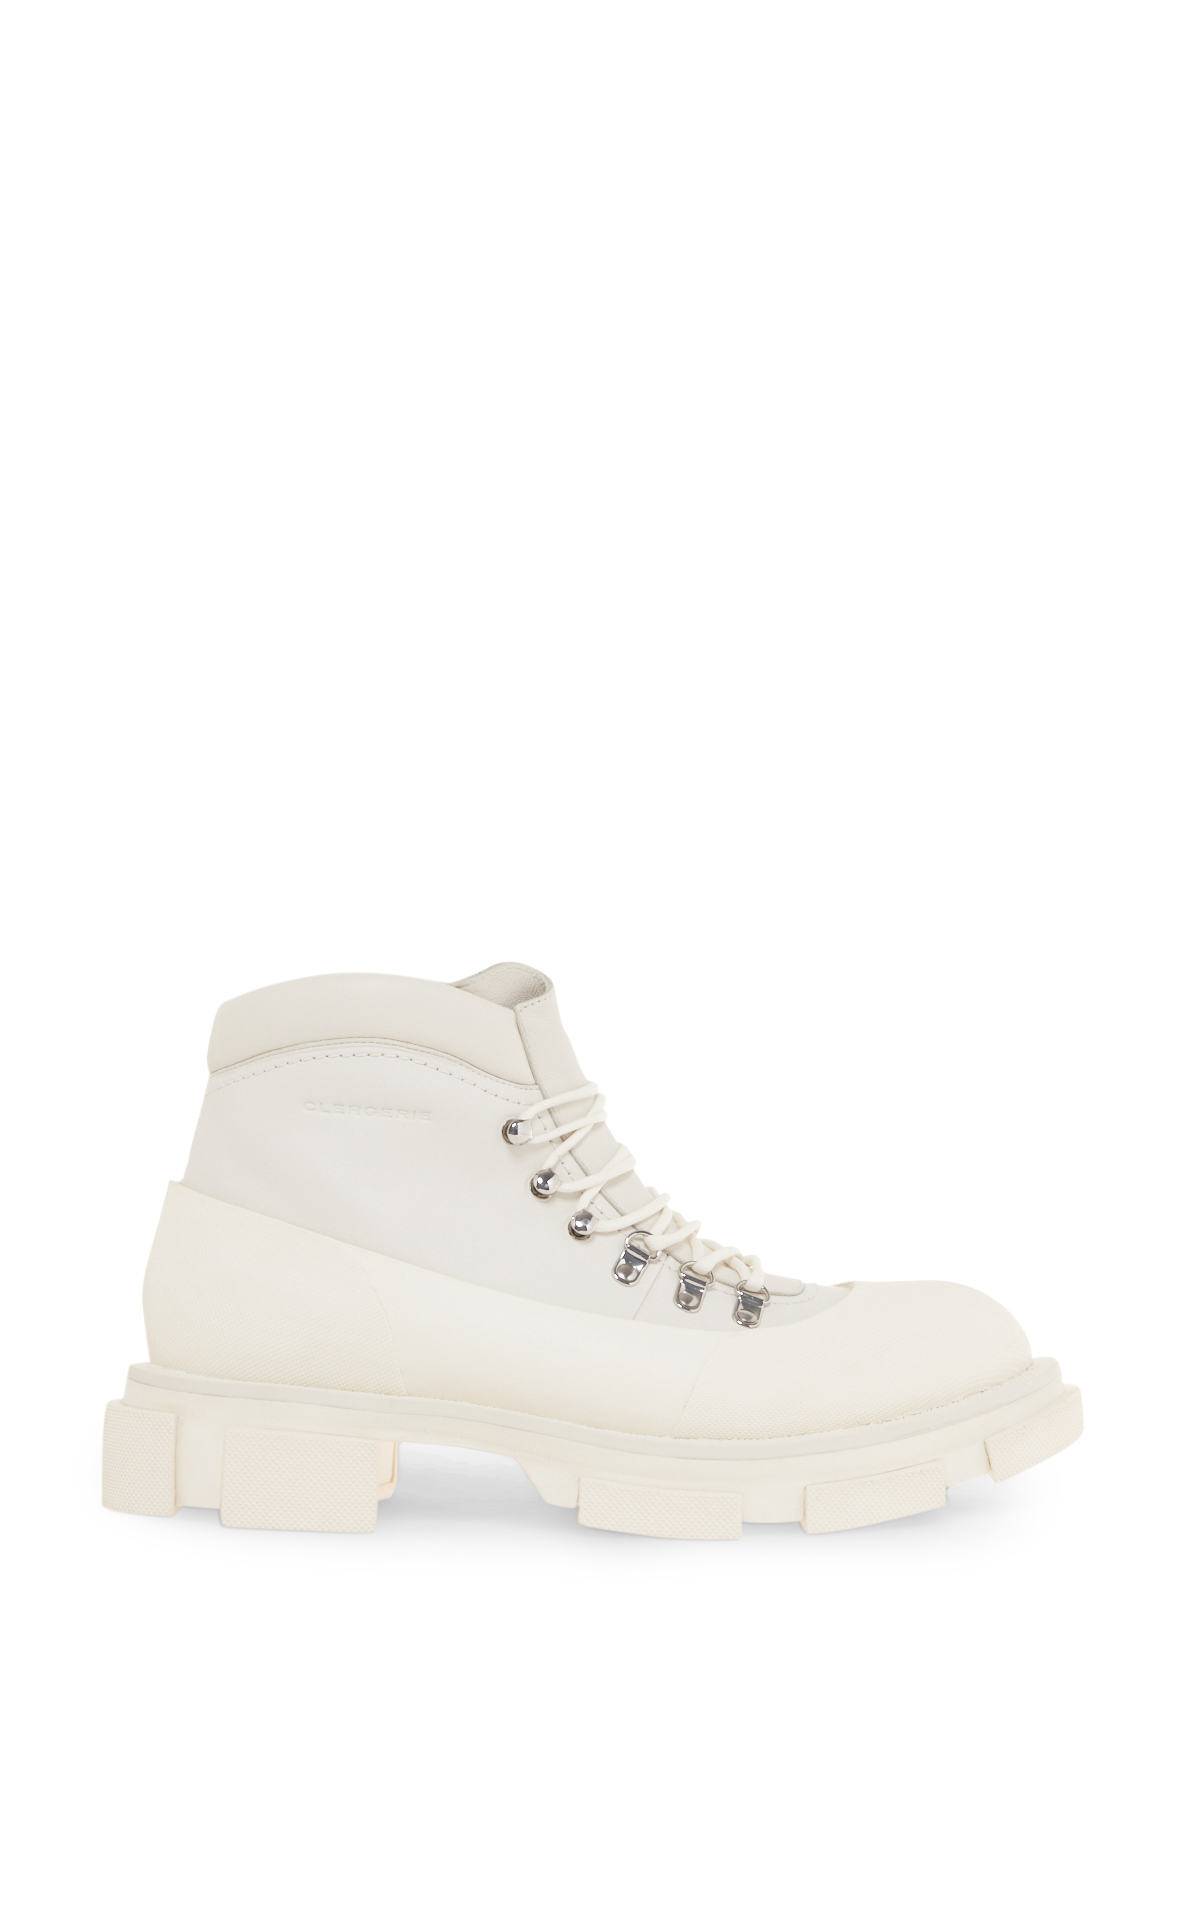 Clergerie women's white Banco boots la vallée village